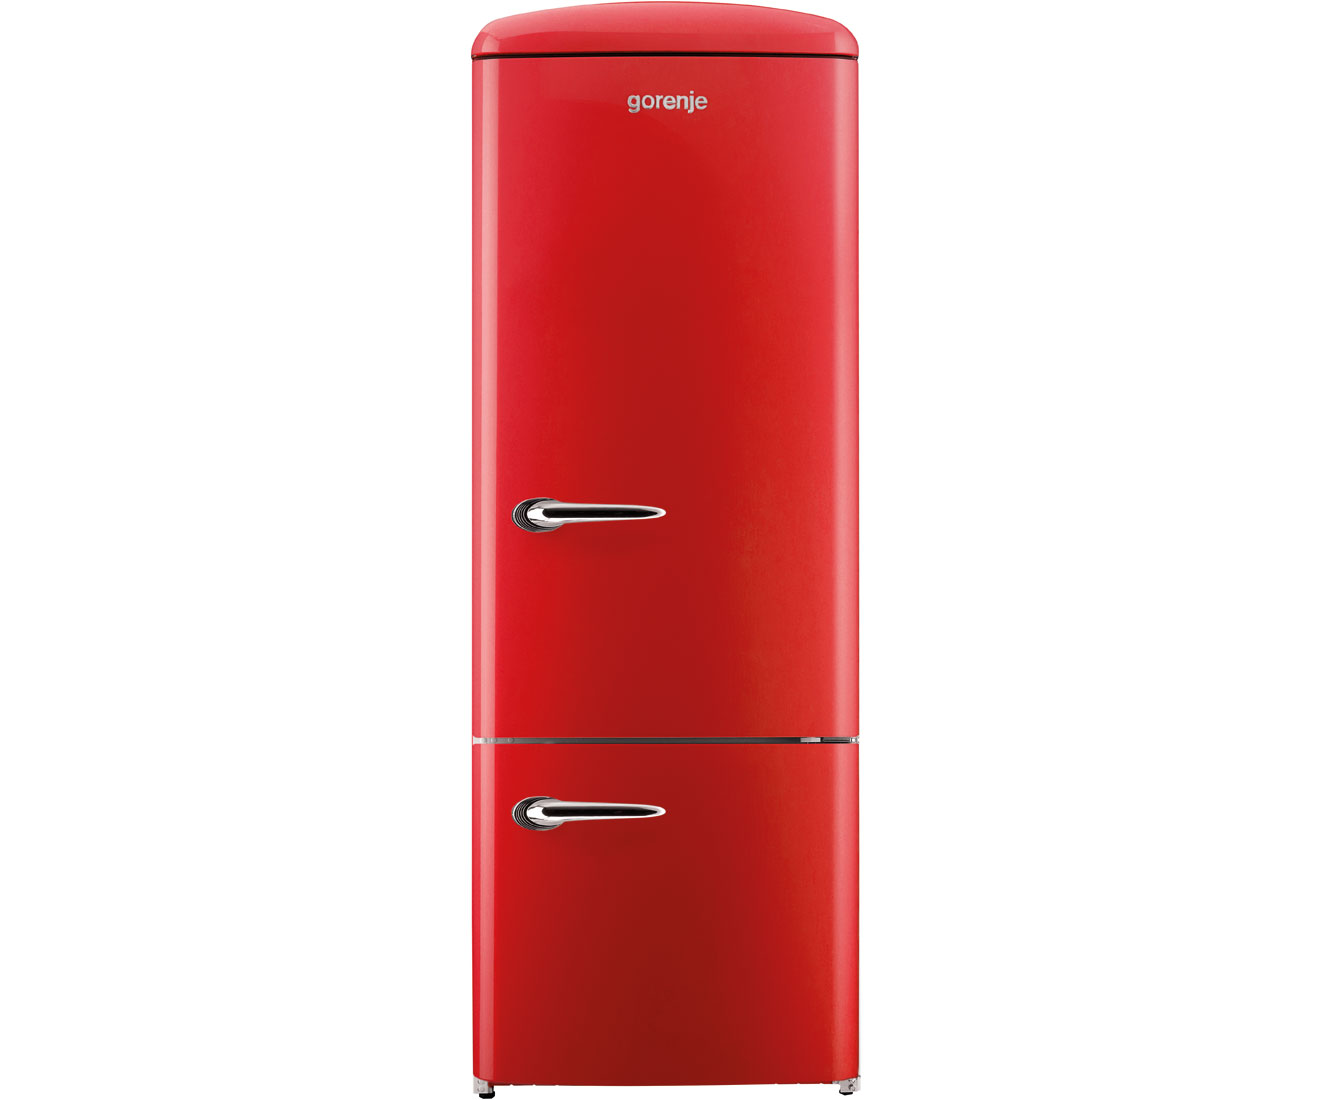 Gorenje Retro Collection Rk 60319 Ord Kuhl Gefrierkombination 60er